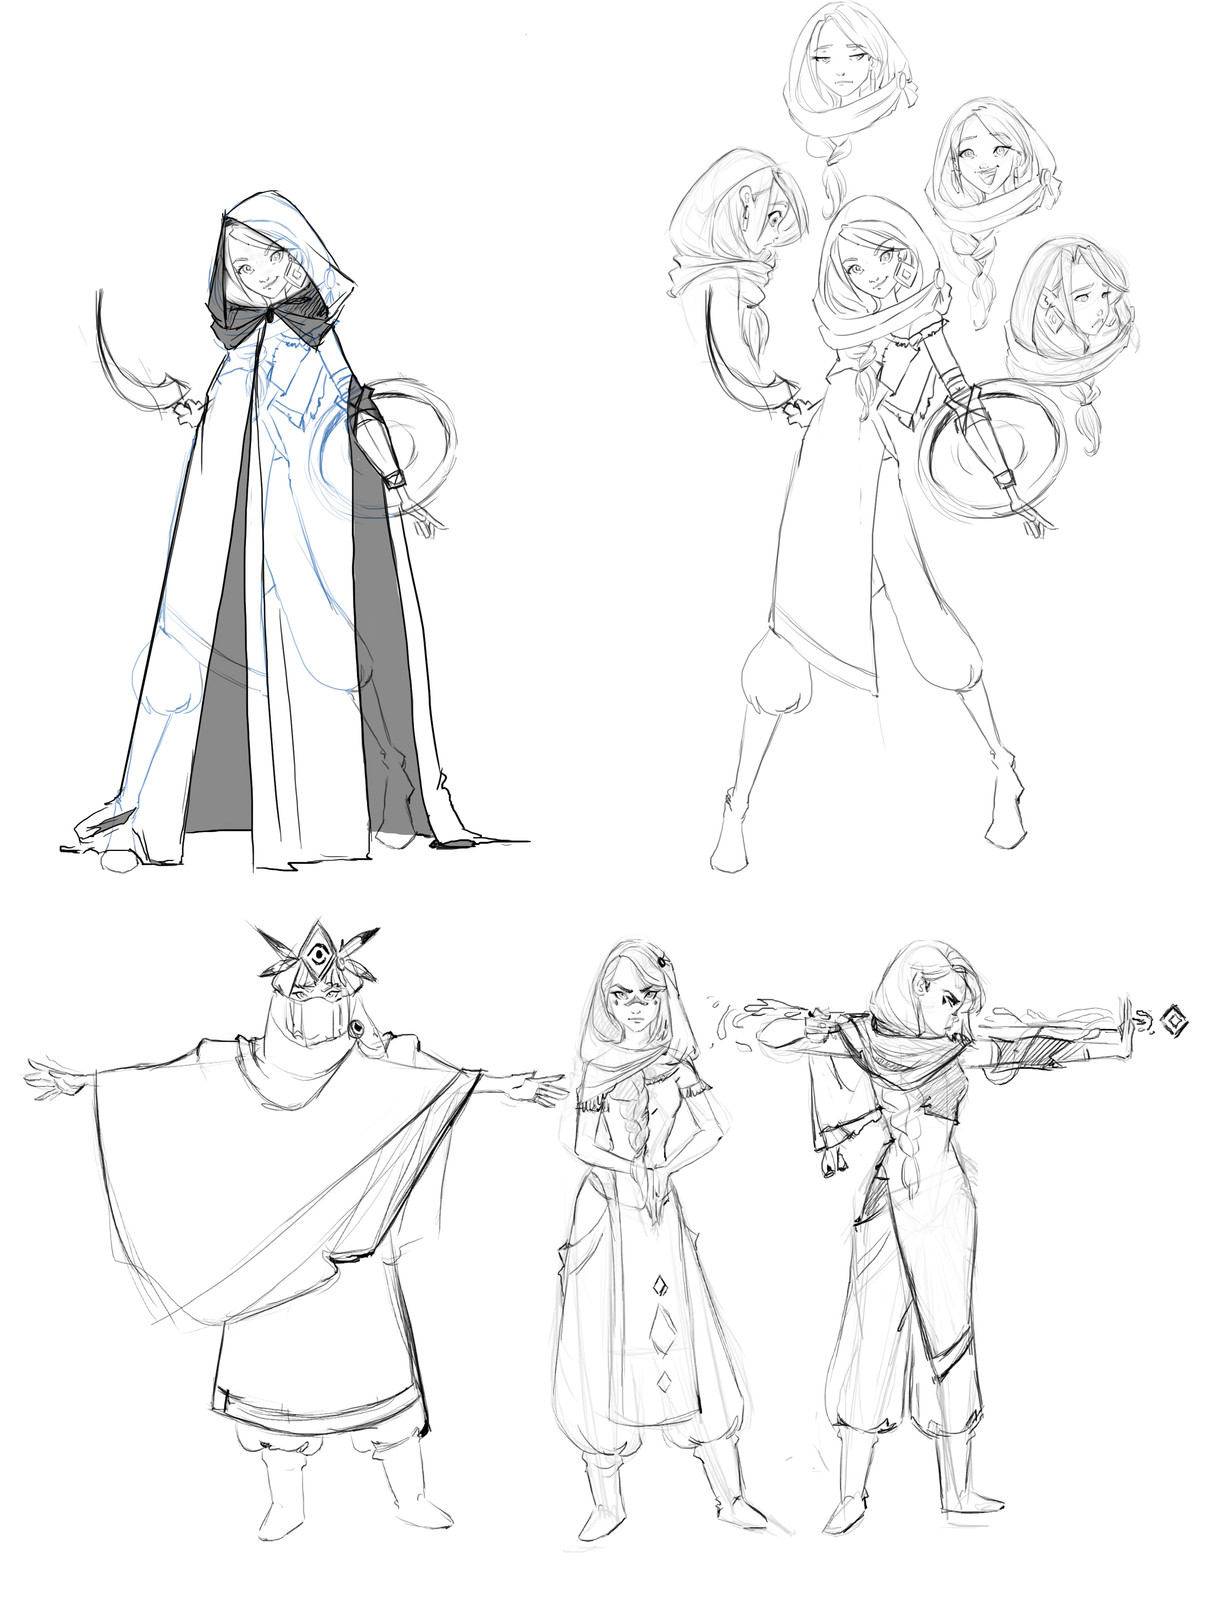 early concept art for 'Shabina' character